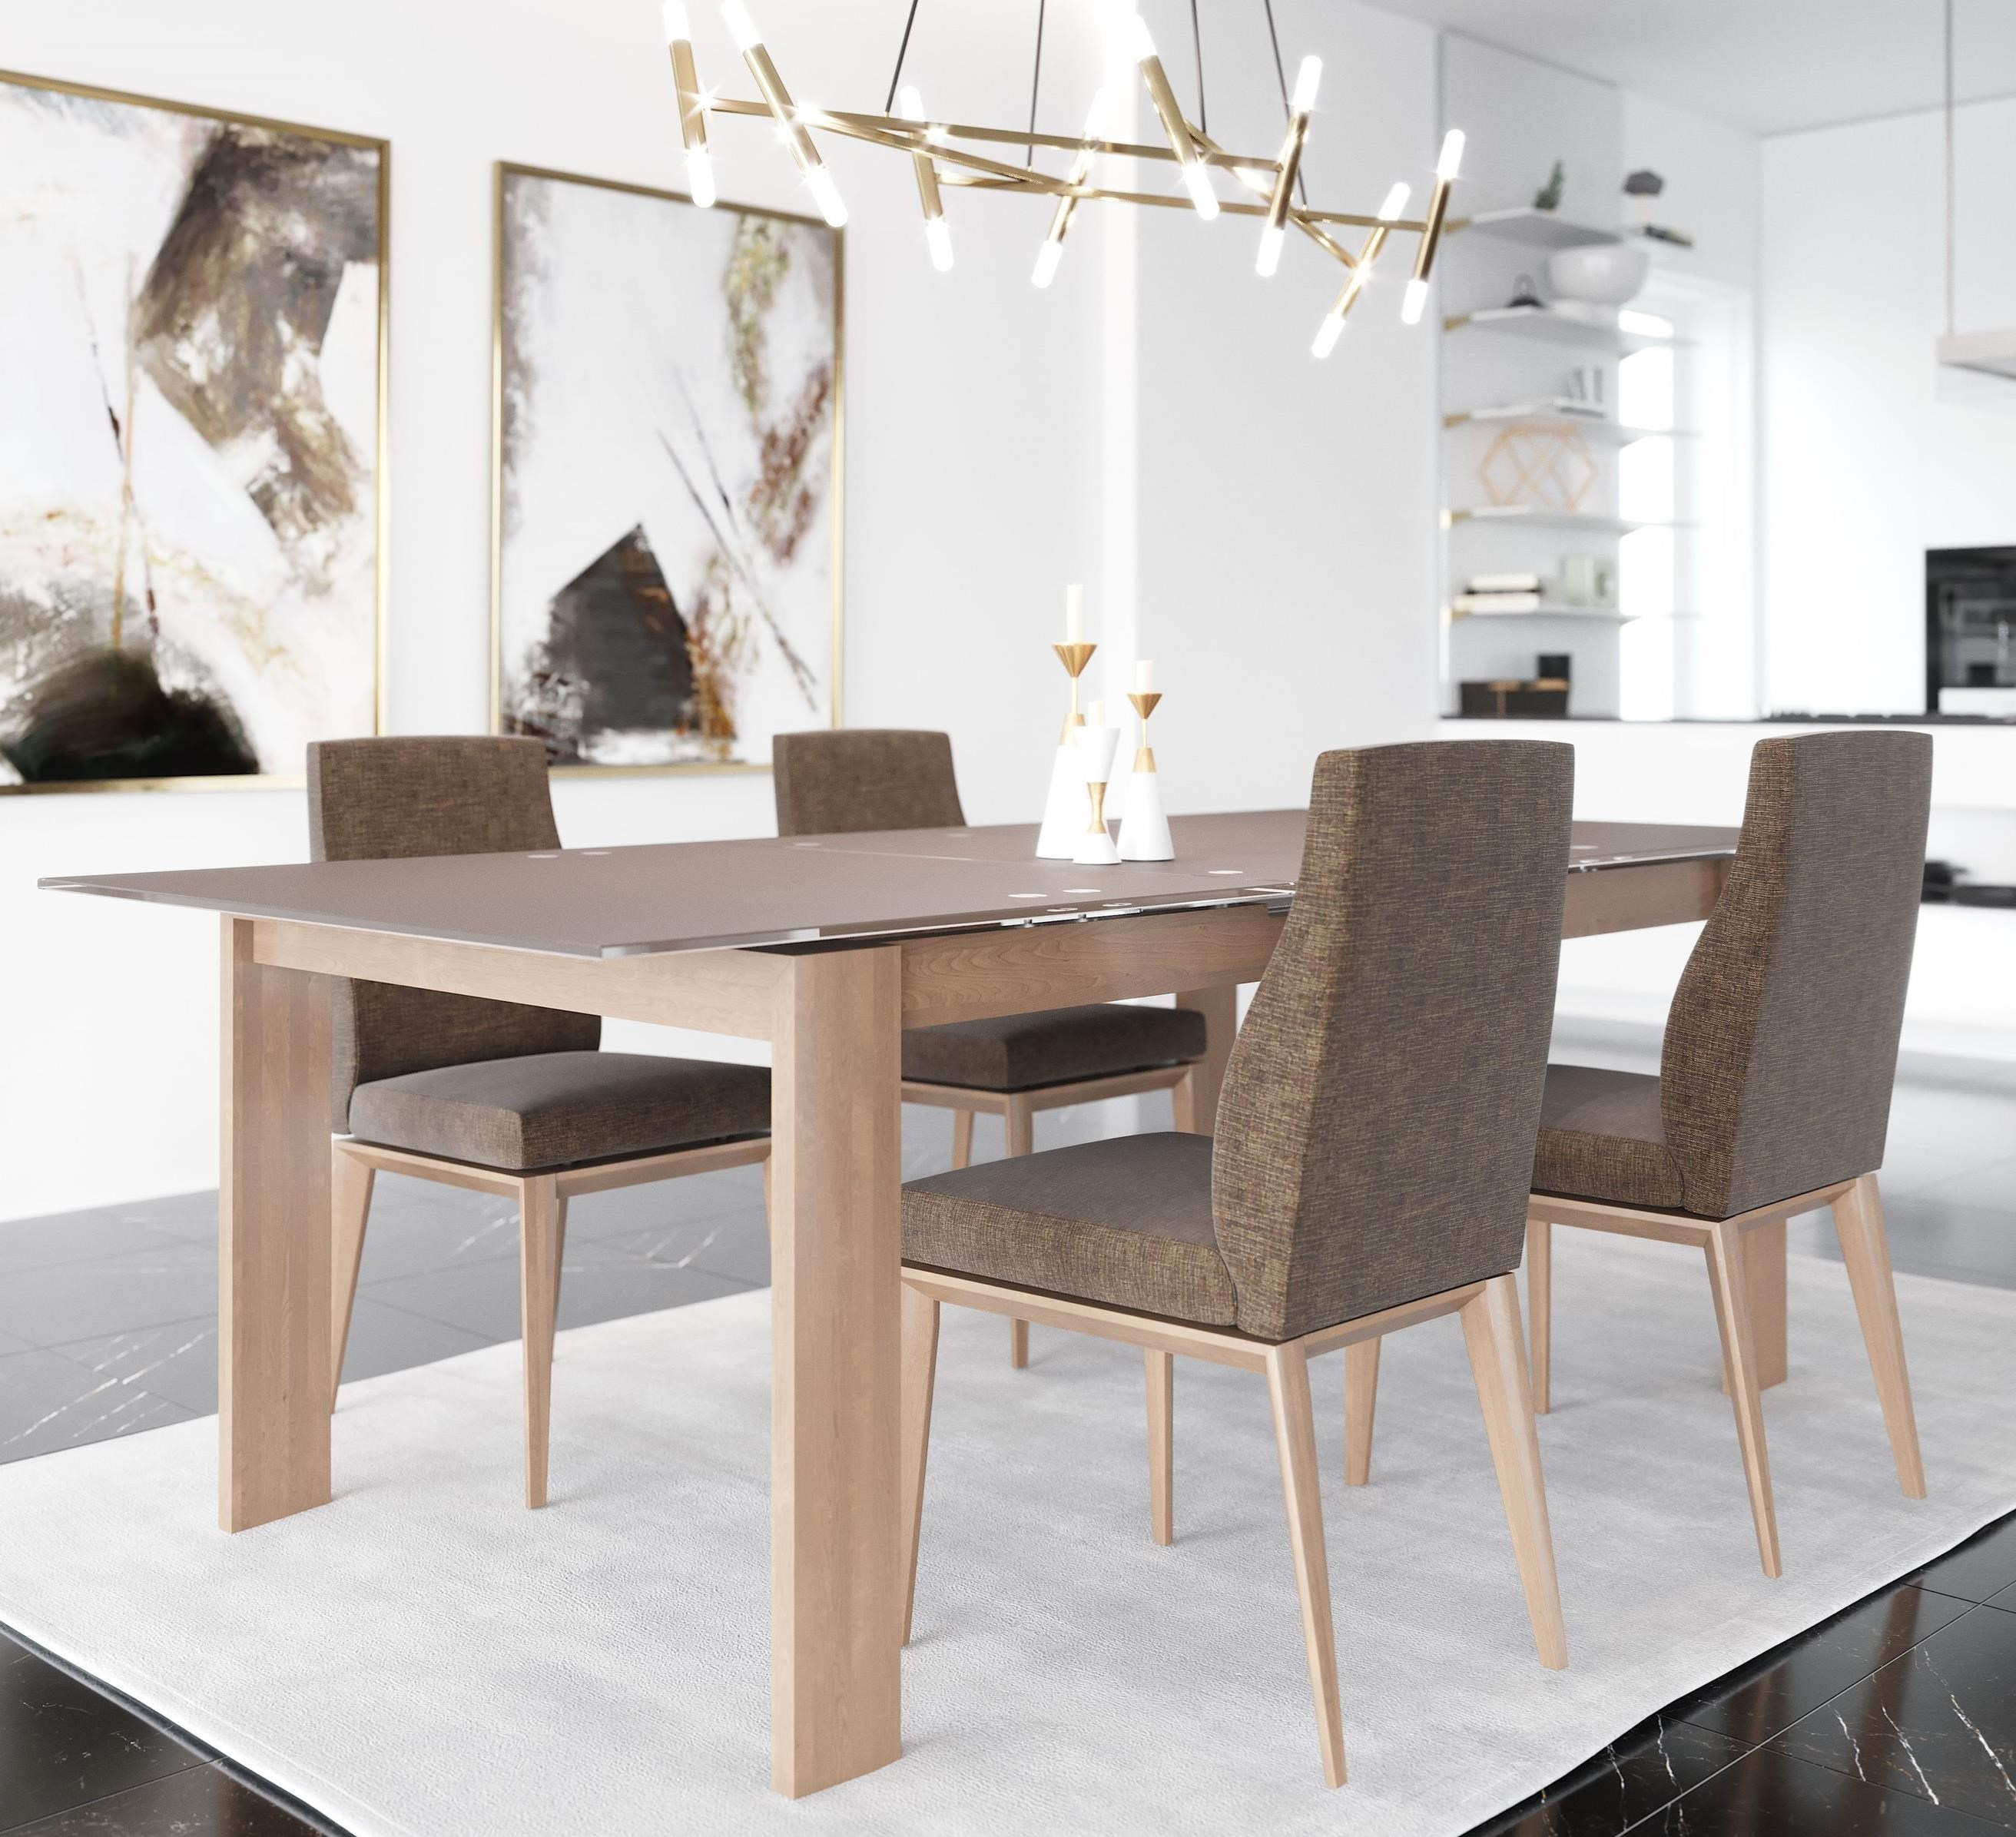 Canadel Downtown Custom Dining Gre03866wb20mdcn1 Customizable Glass Top Dining Table W Self Storing Leaf Becker Furniture Dining Tables